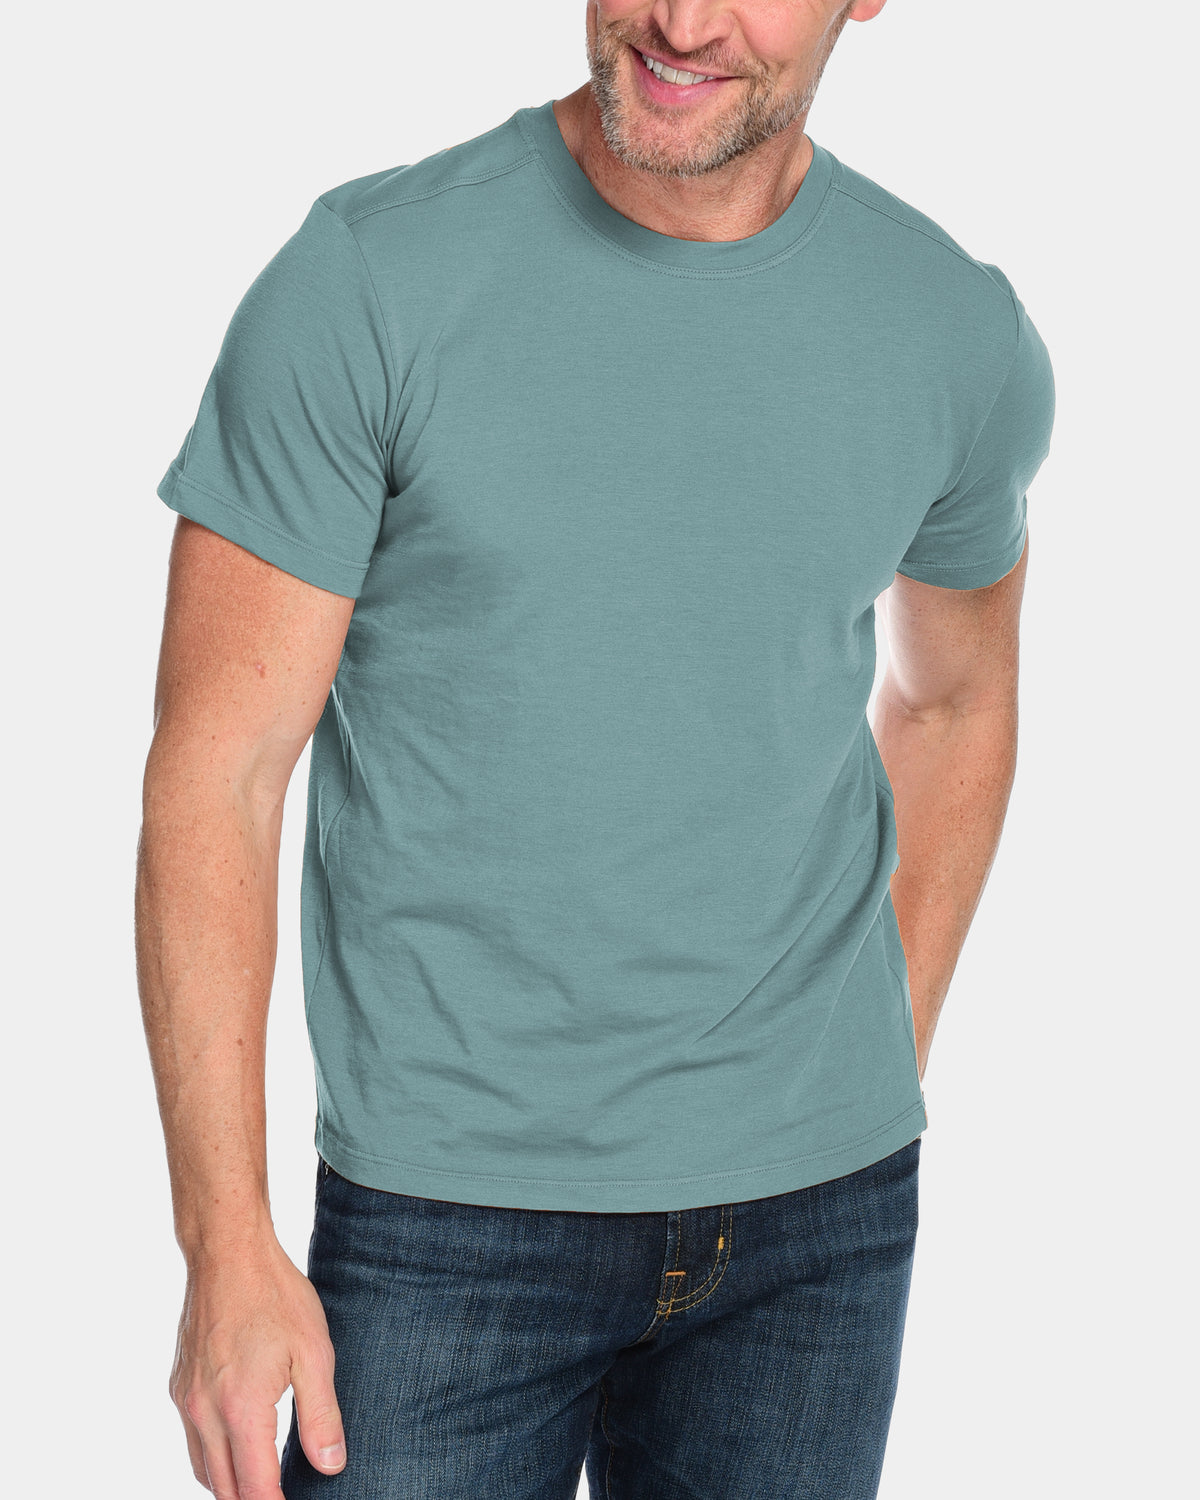 Men's Everyday Cashmere Short Sleeve Crew (Made in USA)